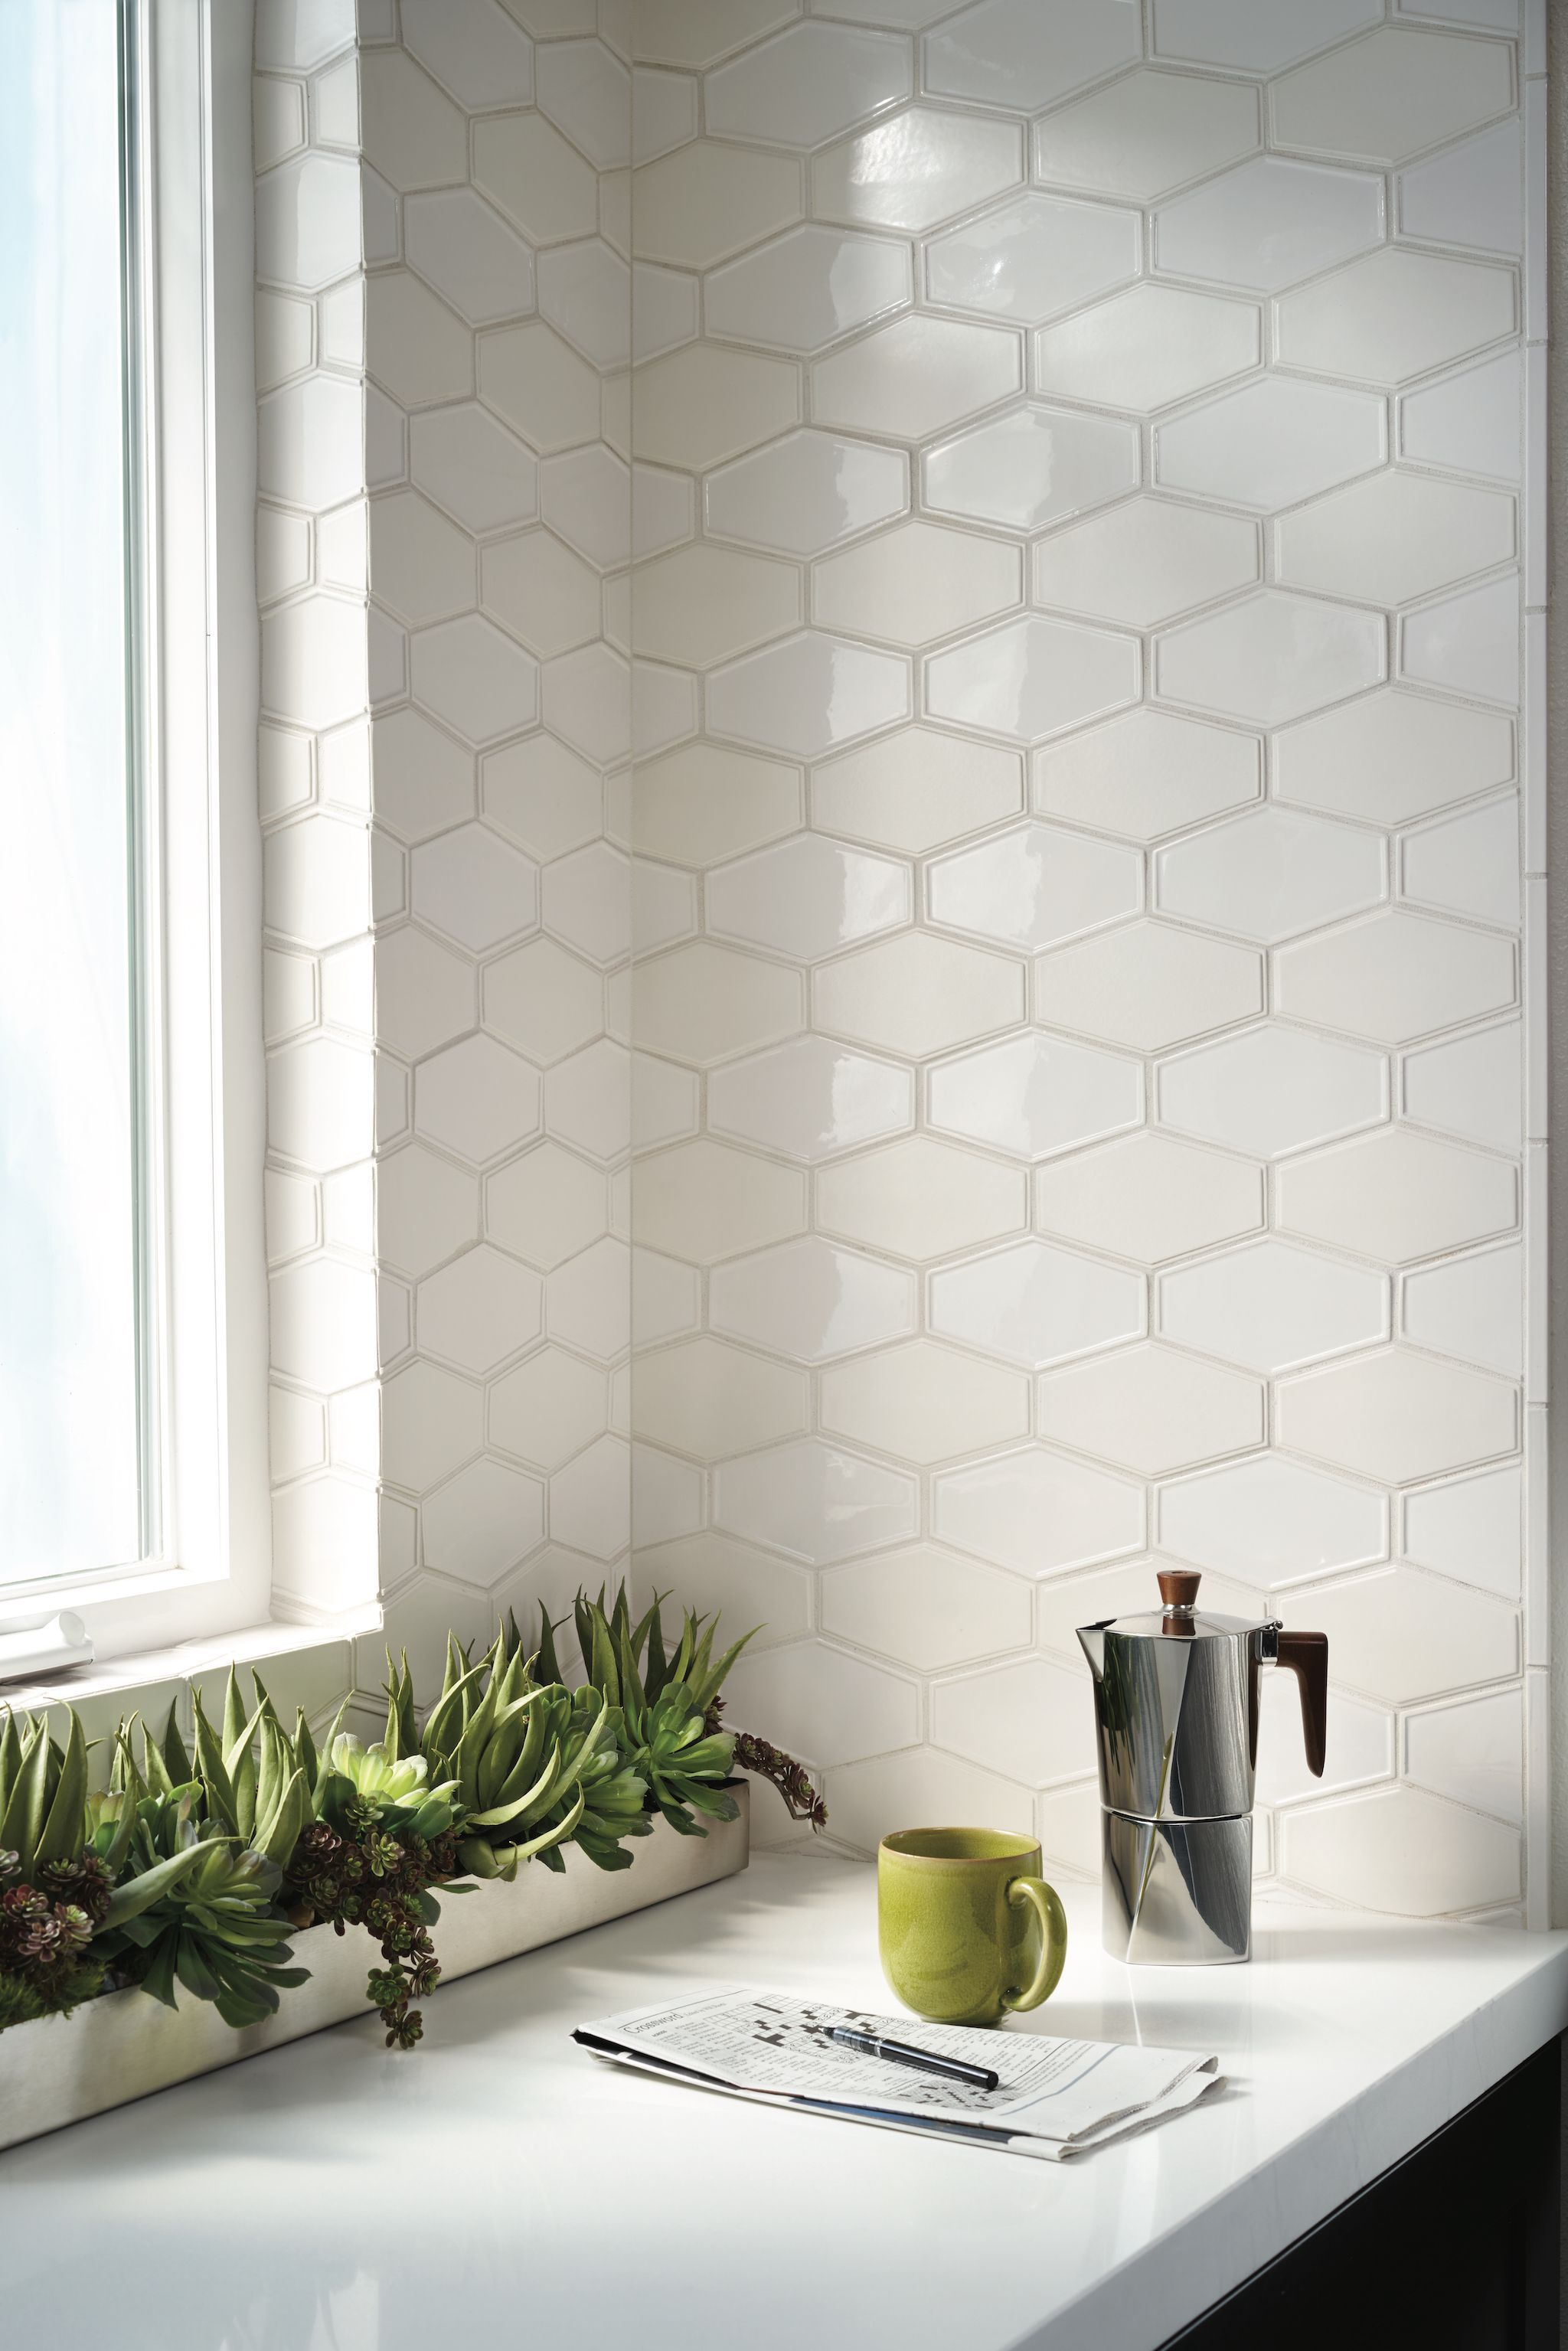 Pin By Christy Roob On Kitchen Tiles Backsplash Ann Sacks Kitchen Backsplash Kitchen Tiles Backsplash Kitchen Backsplash Ann sacks kitchen backsplash